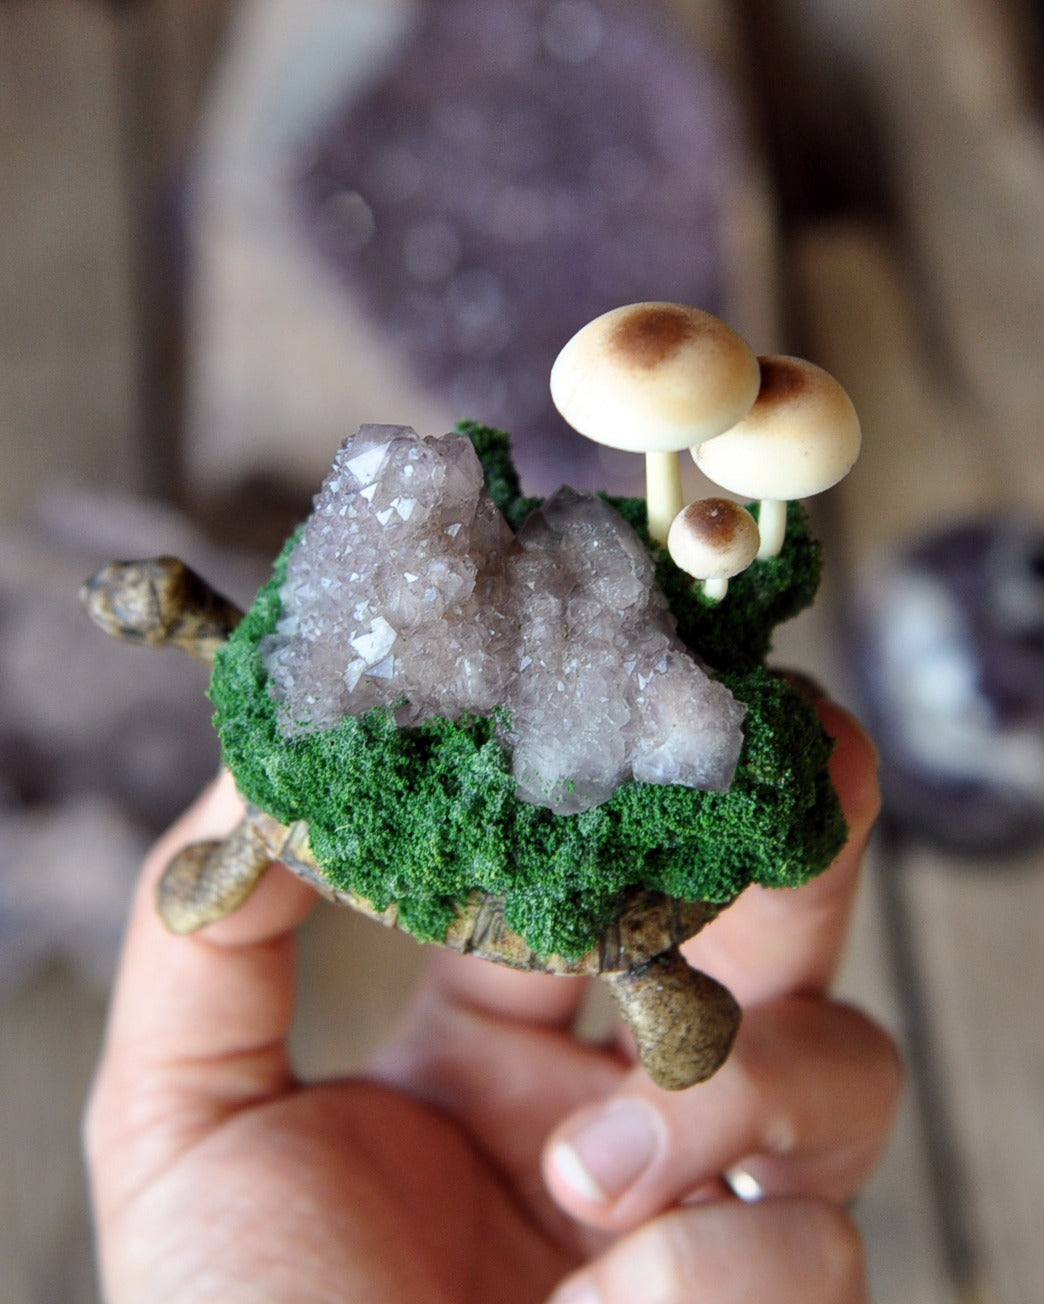 Tortoise Decorative Miniature Art Object, Mushrooms Family Resin Art, Spirit Amethyst Quartz Crystal Cluster, Realistic Forest Tortoise Home Decoration Art Object